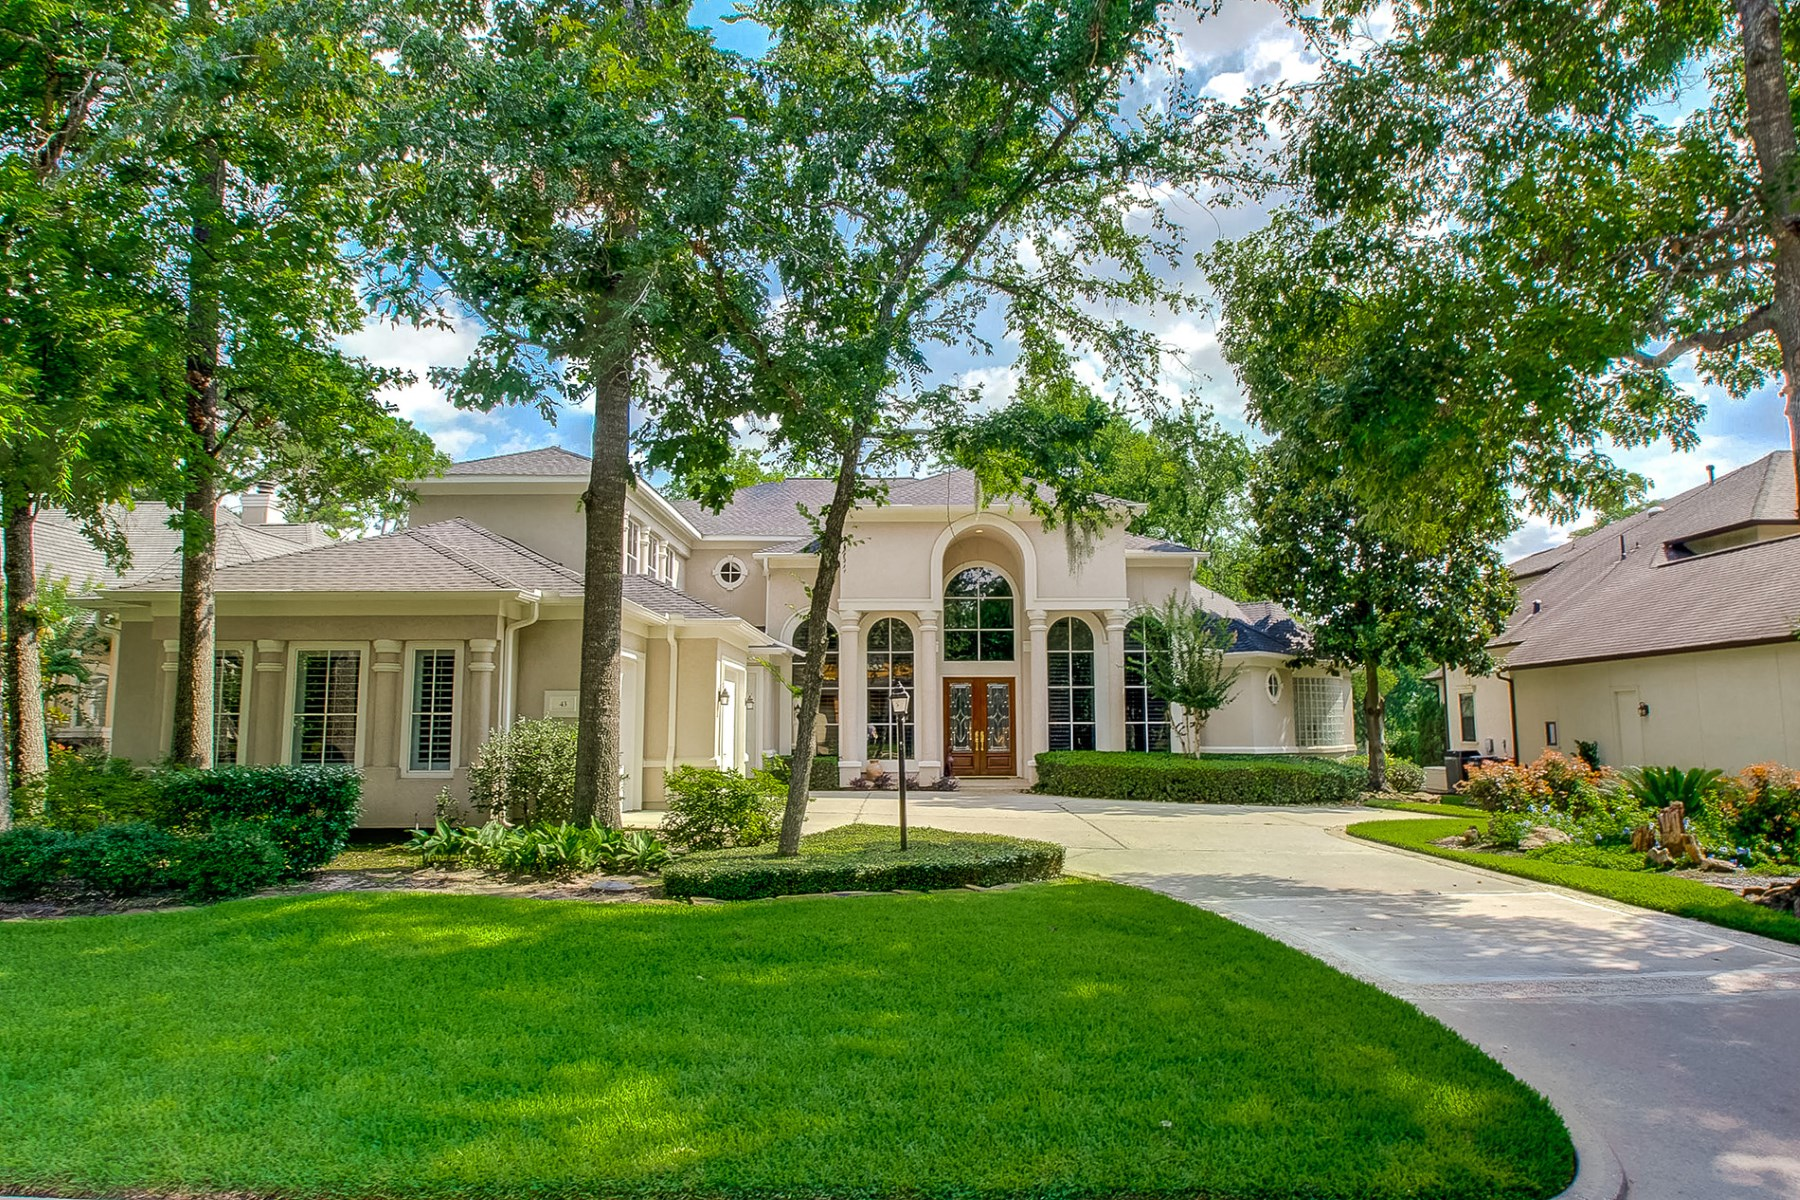 Single Family Home for Sale at 43 Promenade Street North Montgomery, Texas, 77356 United States